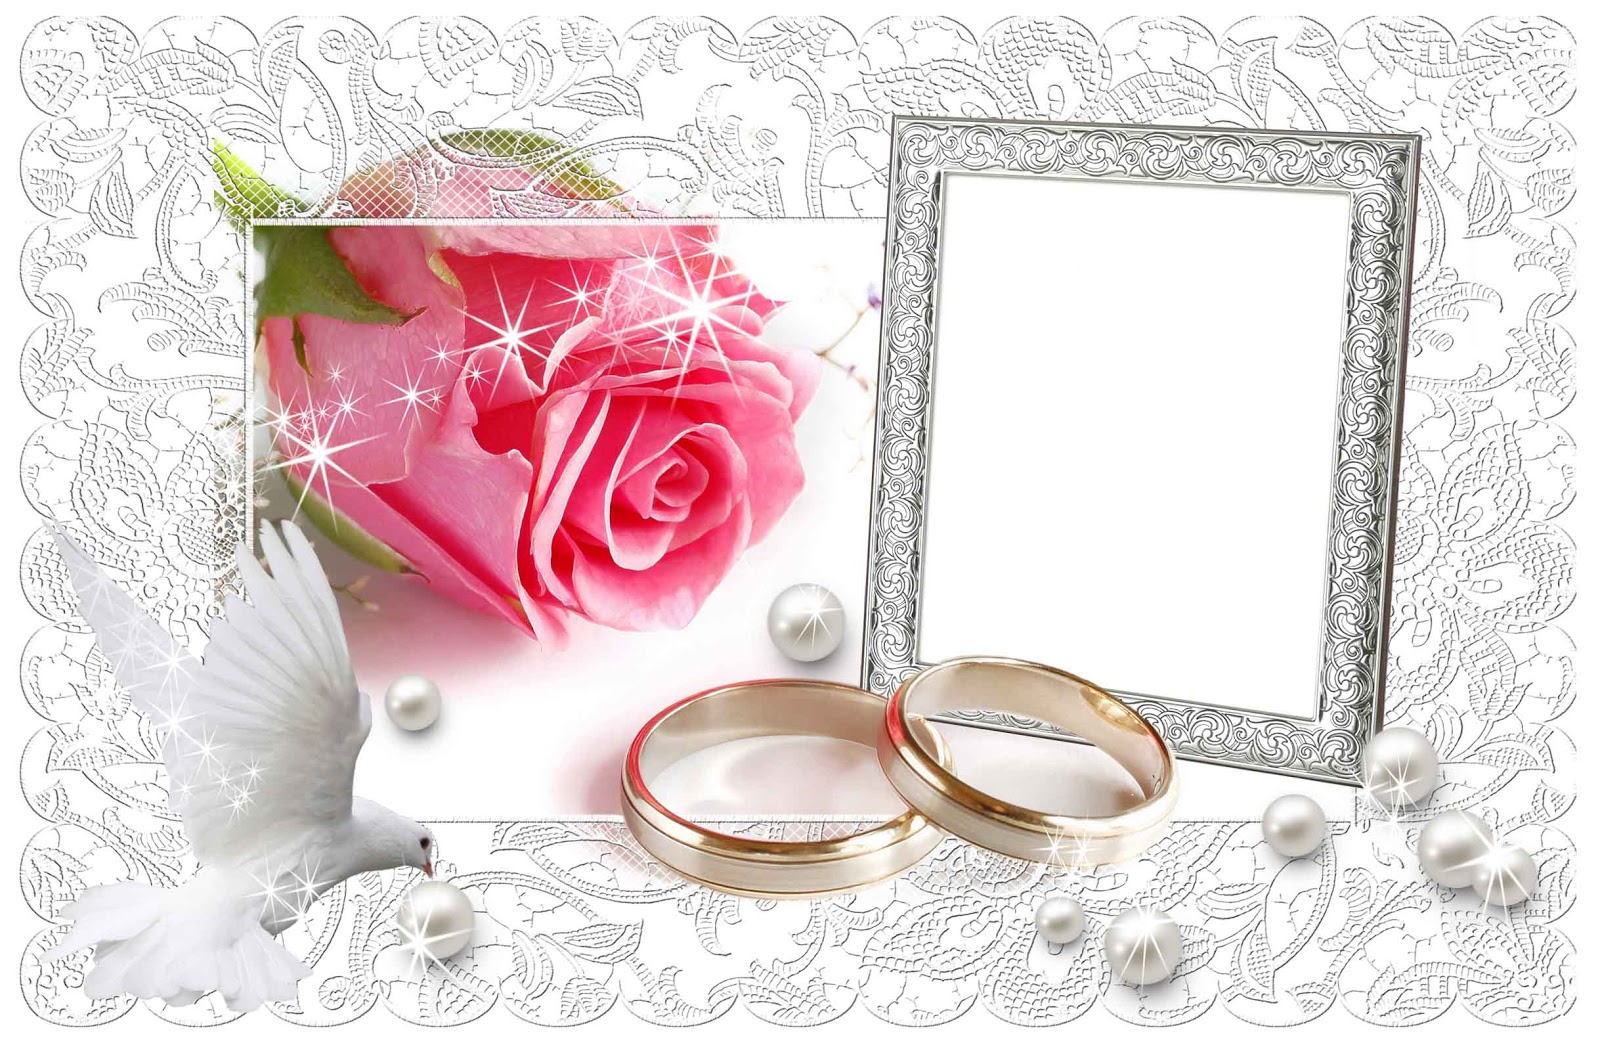 31 Awesome wedding frames png free download - Wedding PNG Download